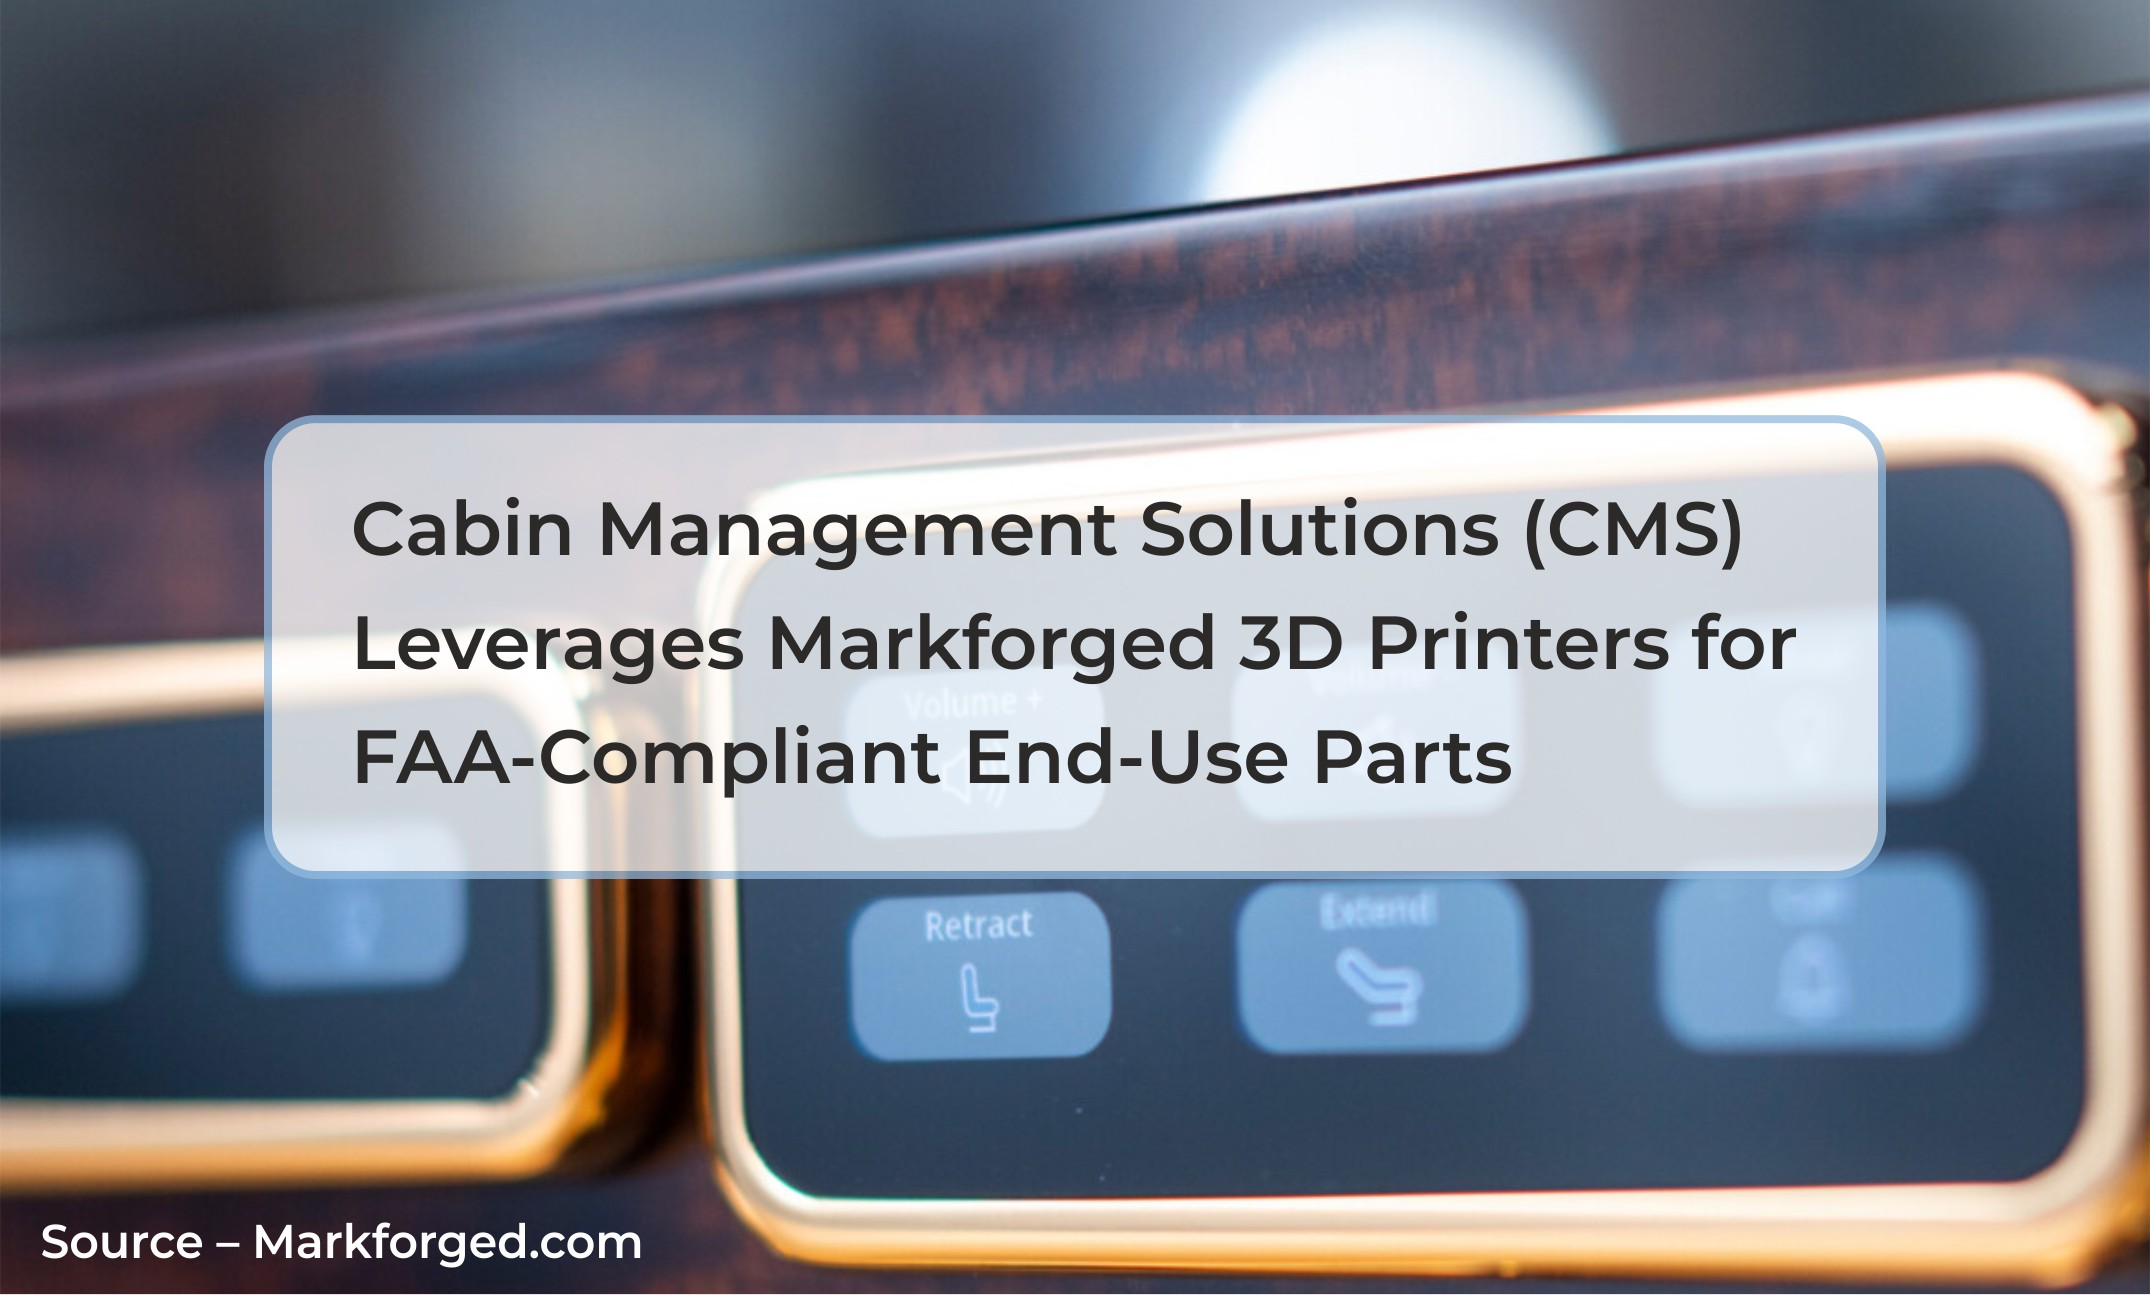 Cabin Management Solutions leverages Markforged 3D Printers for FAA-Compliant End-Use Parts